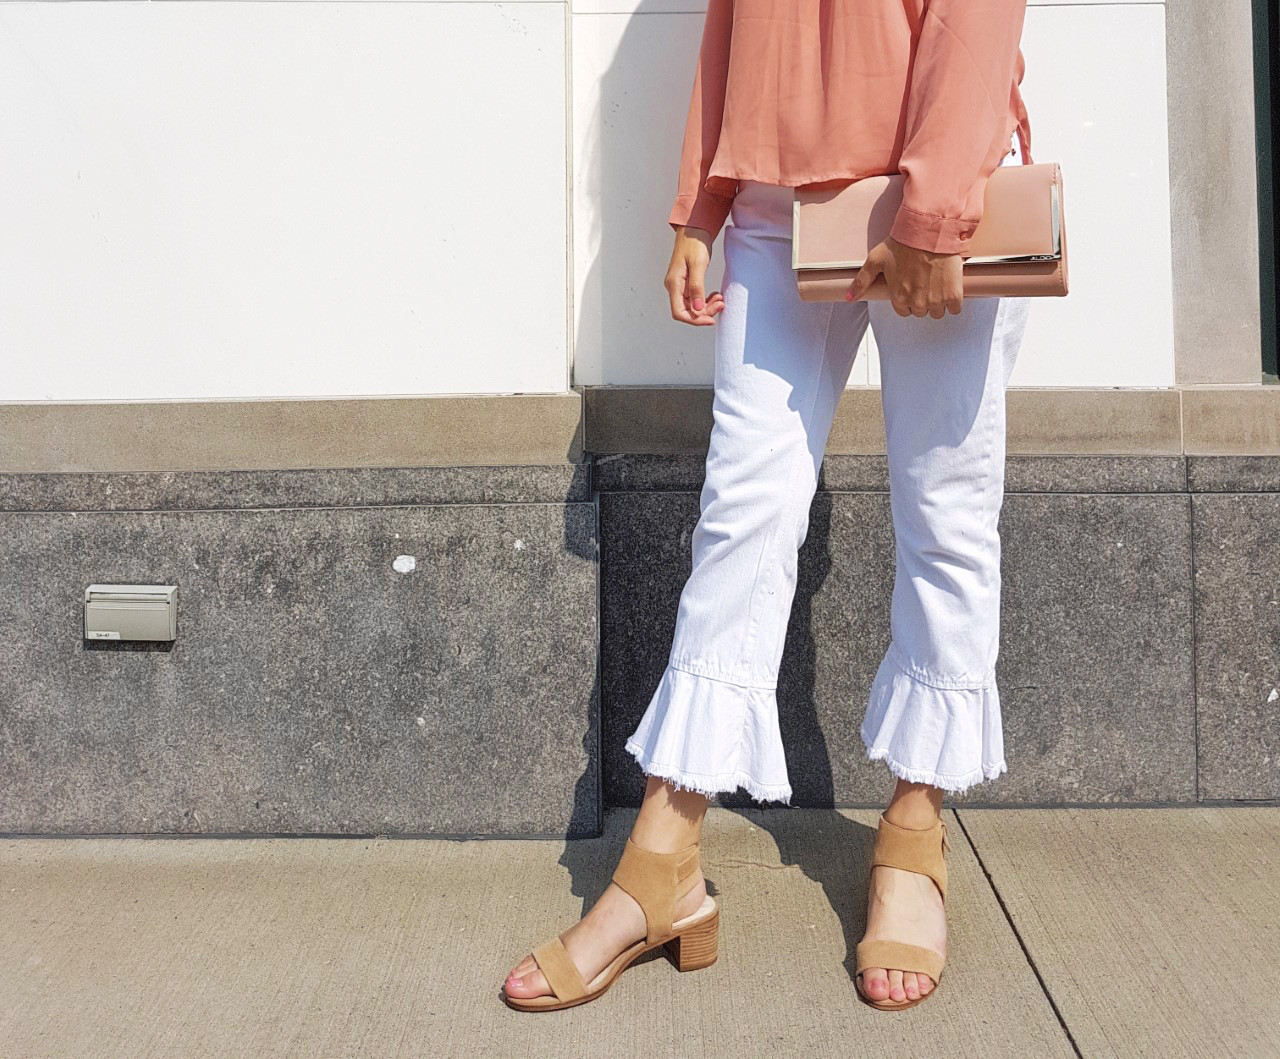 Zara, Vero Moda, Steve Madden, Aldo, Blogger, Style, White Denim, Summer, Trends, Fashion